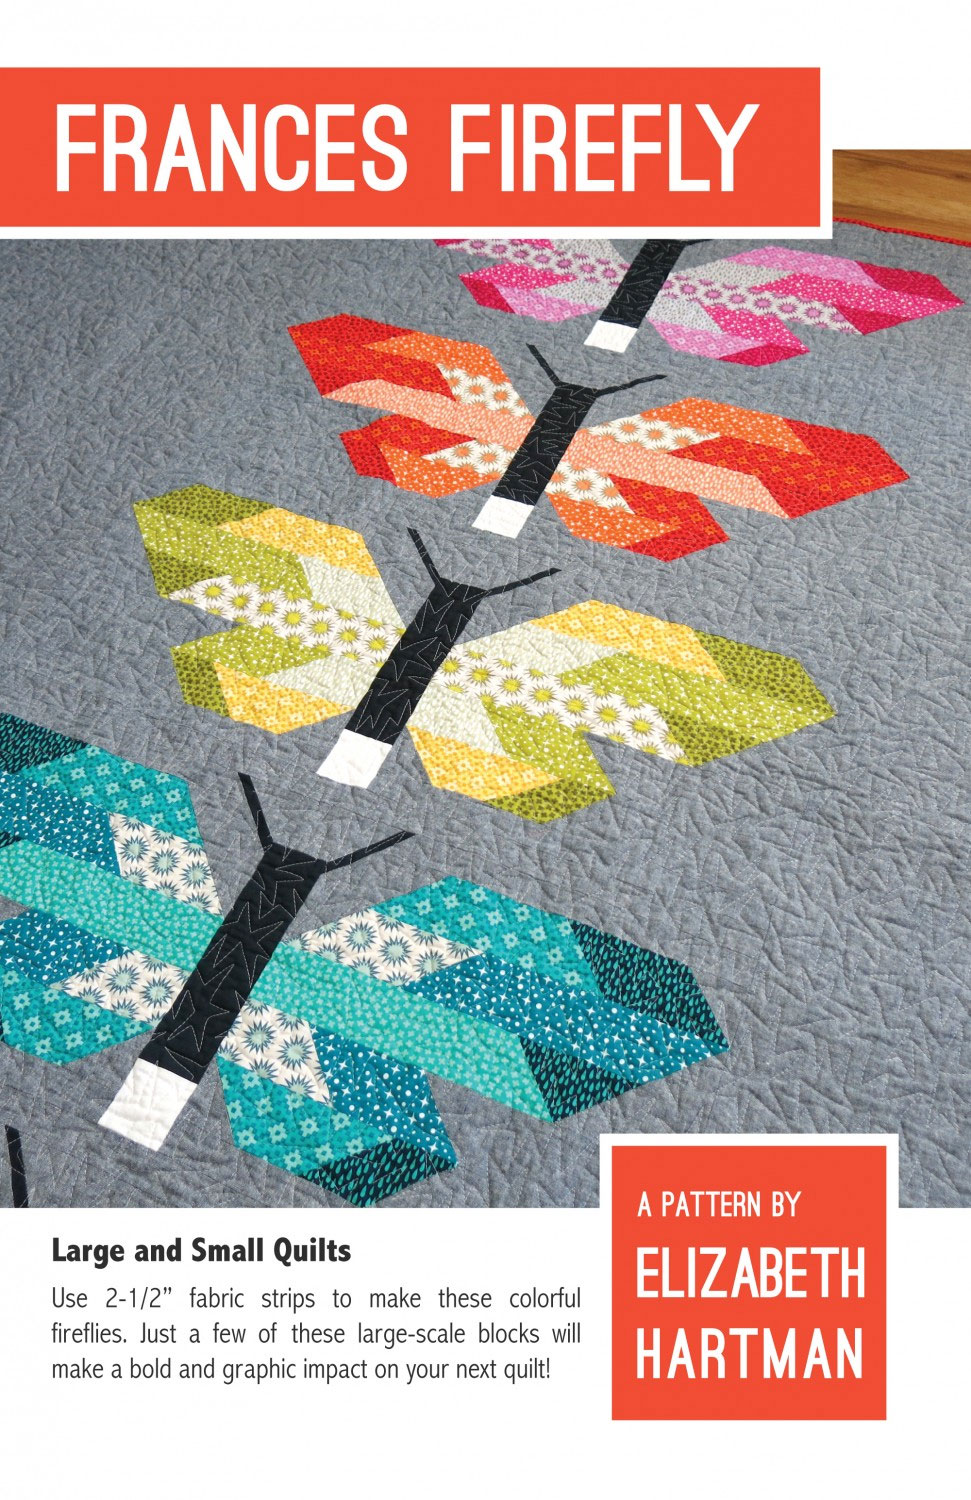 Fancy Firefly quilt sewing pattern by Elizabeth Hartman front cover image